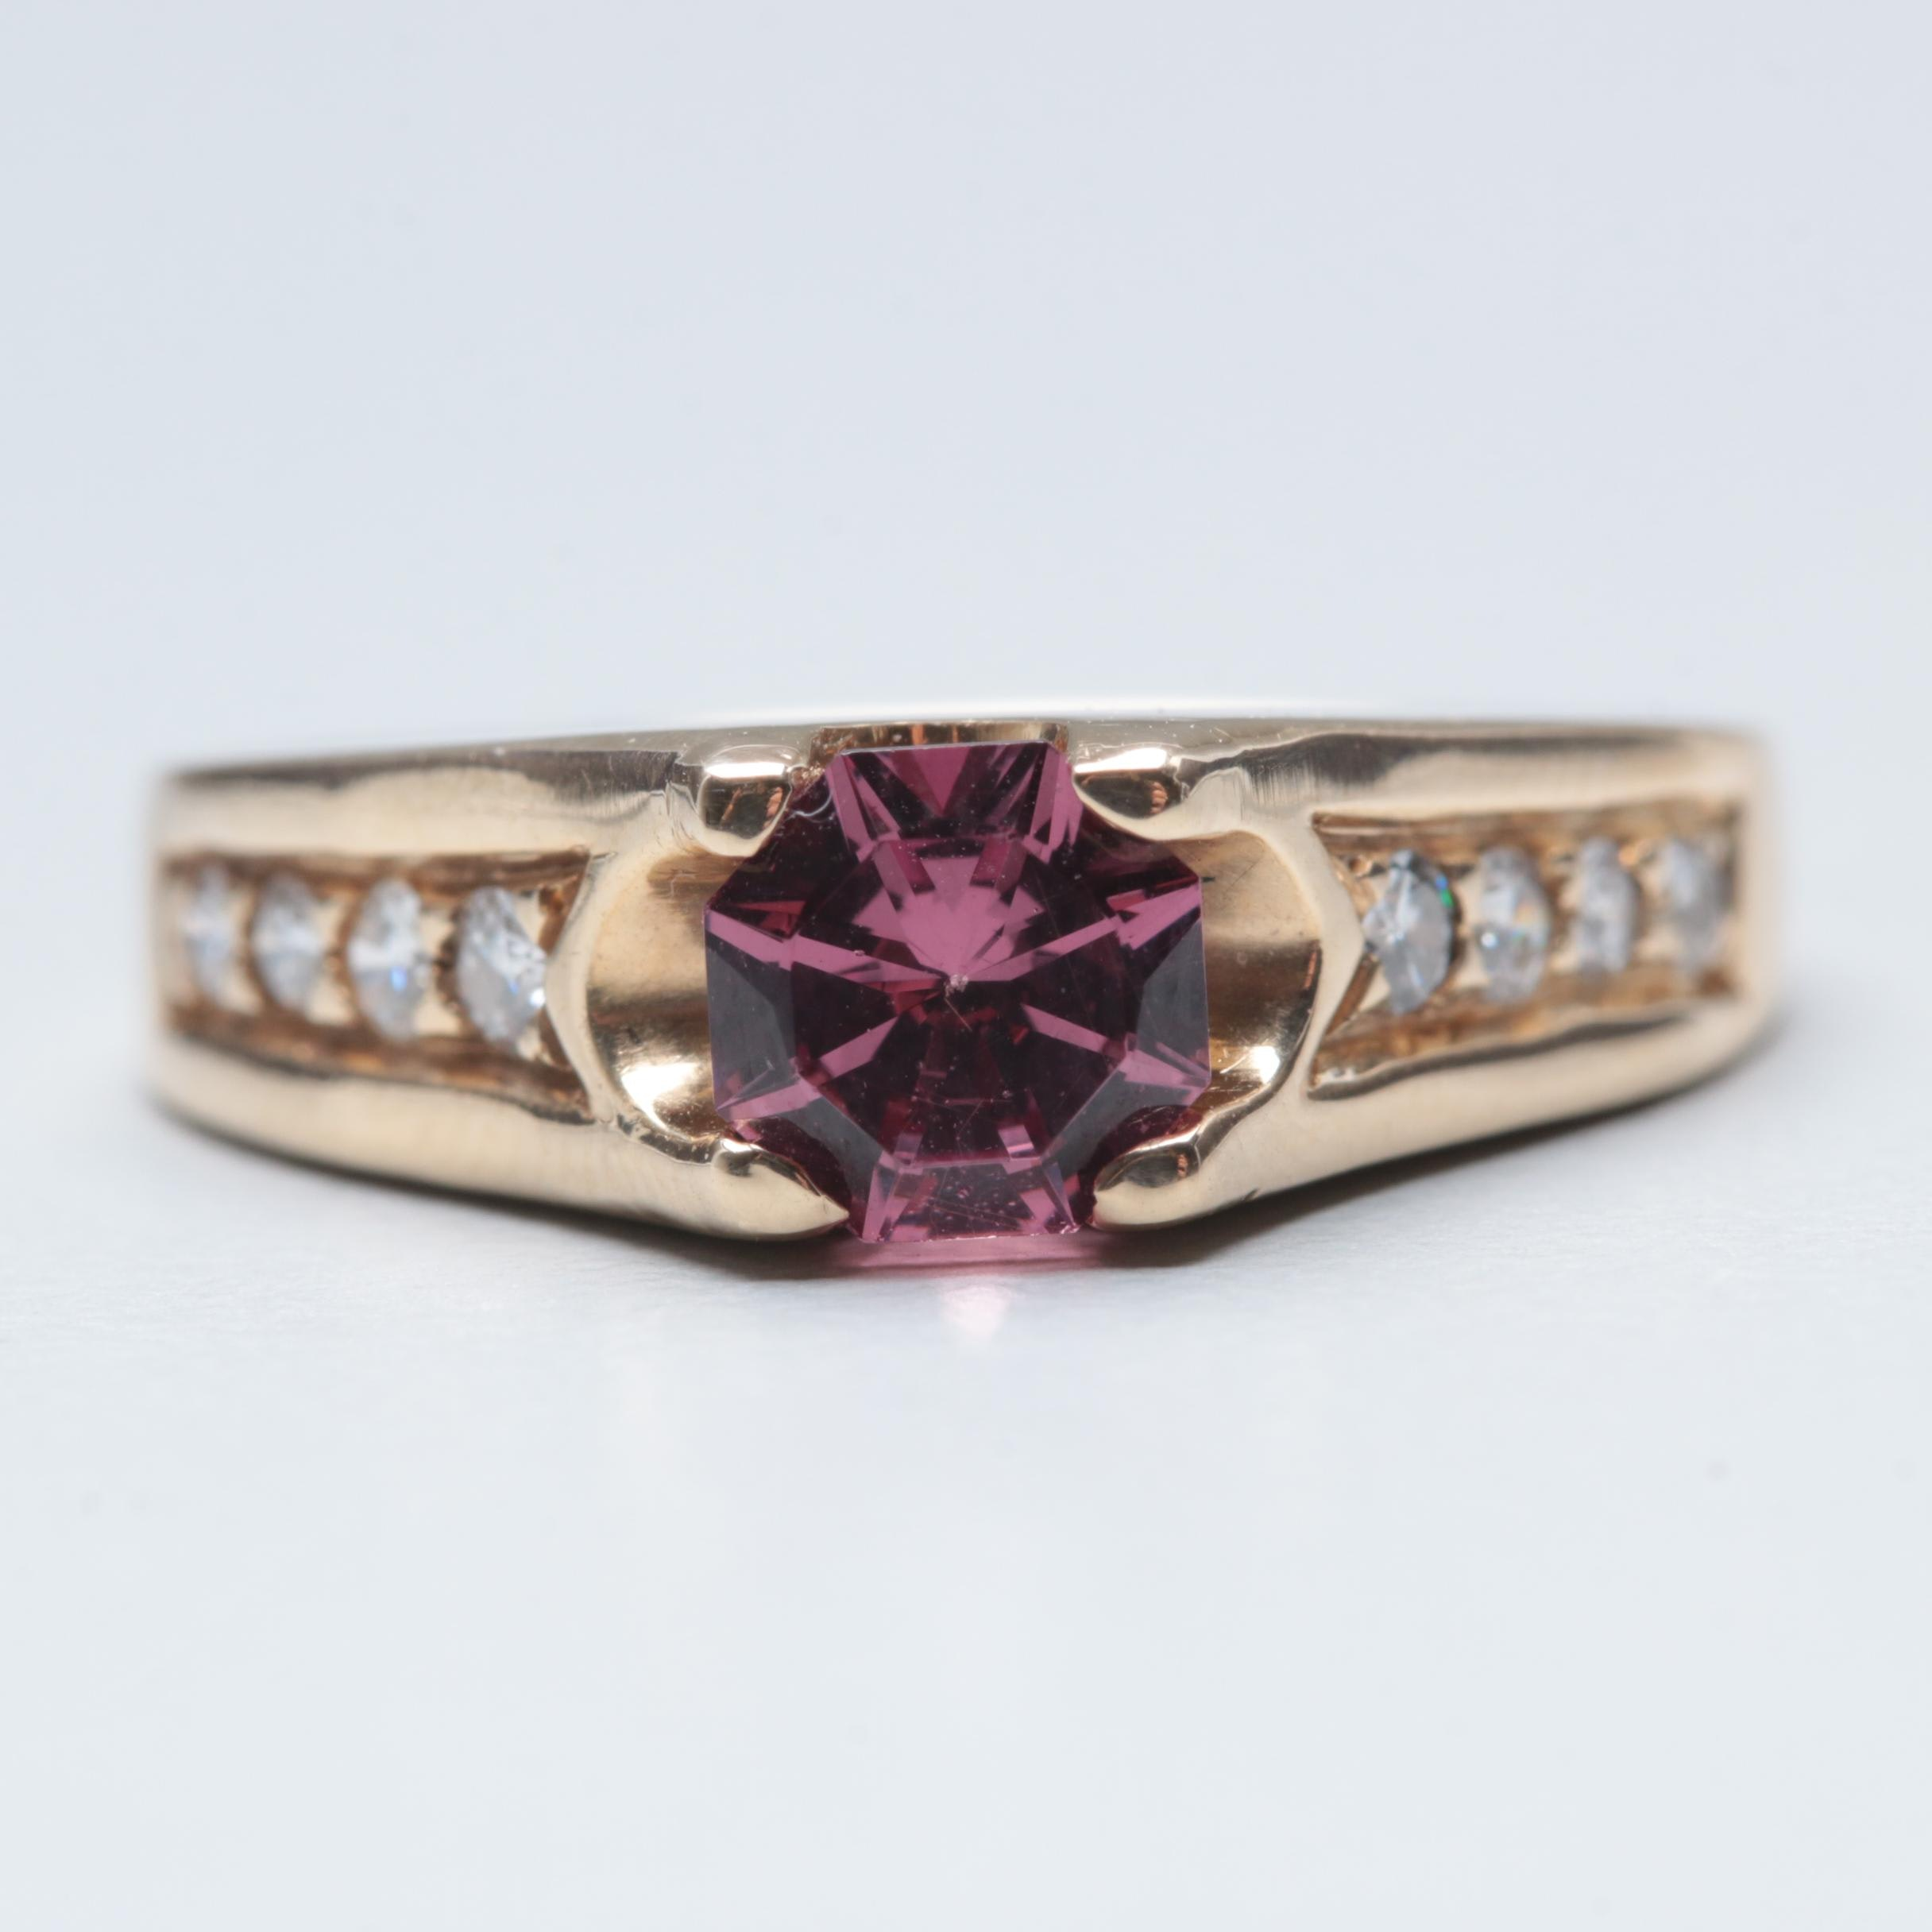 Krementz 14K Yellow Gold Rhodolite Garnet and Diamond Ring